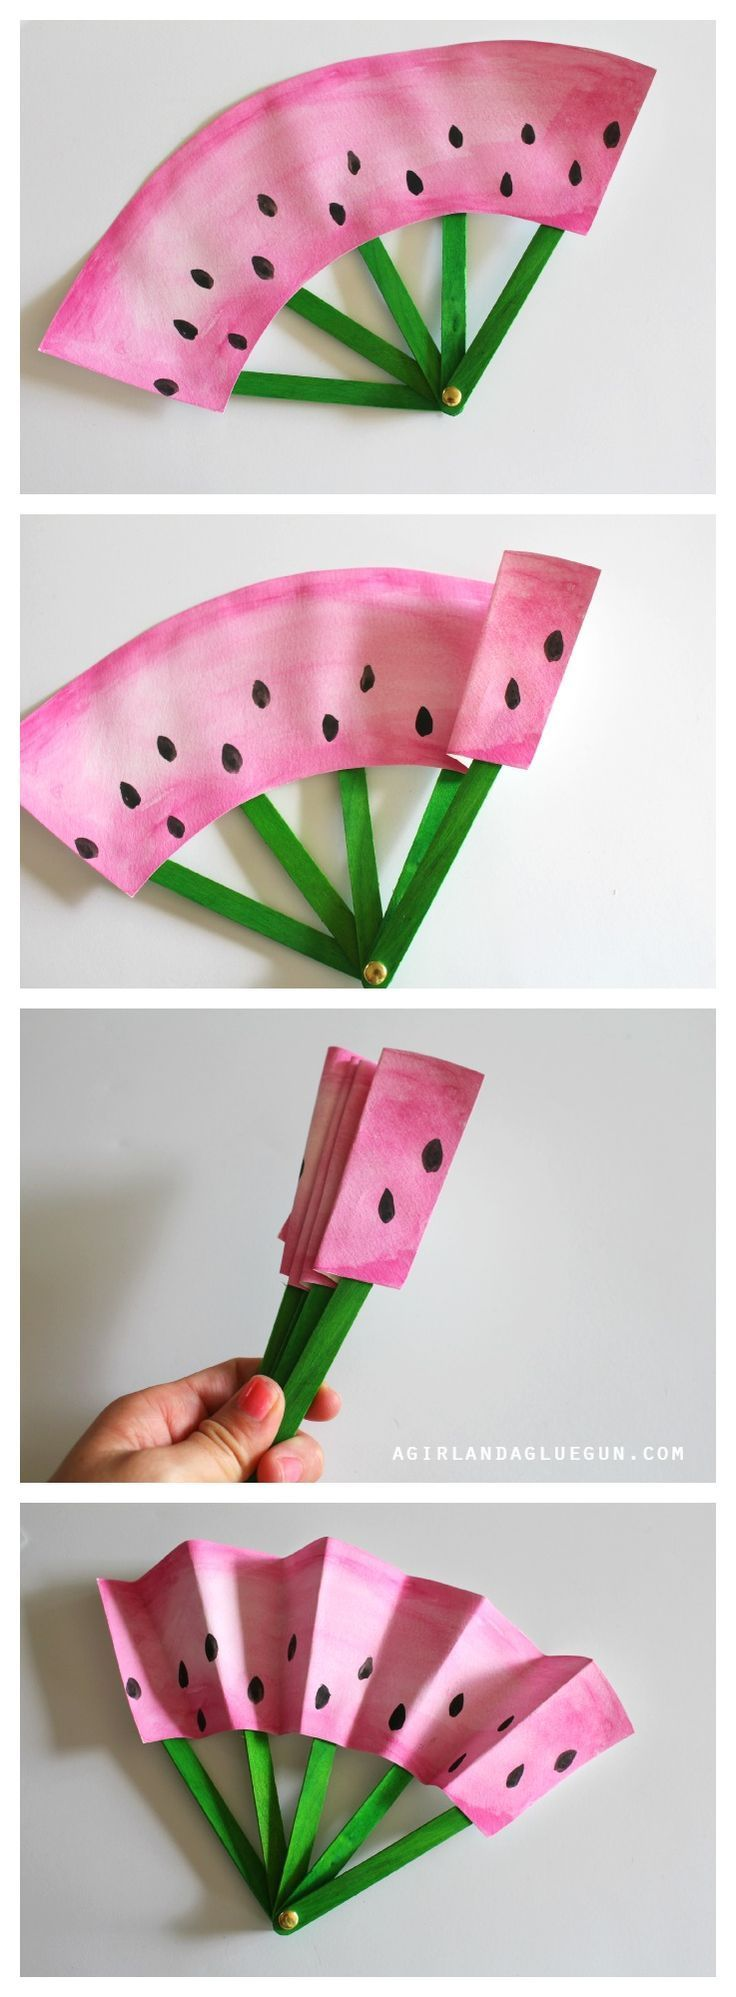 Create a fun DIY Fruit Fan with this adorable kids craft which is perfect for summer. Keep the kids busy with this fun and simple craft idea.